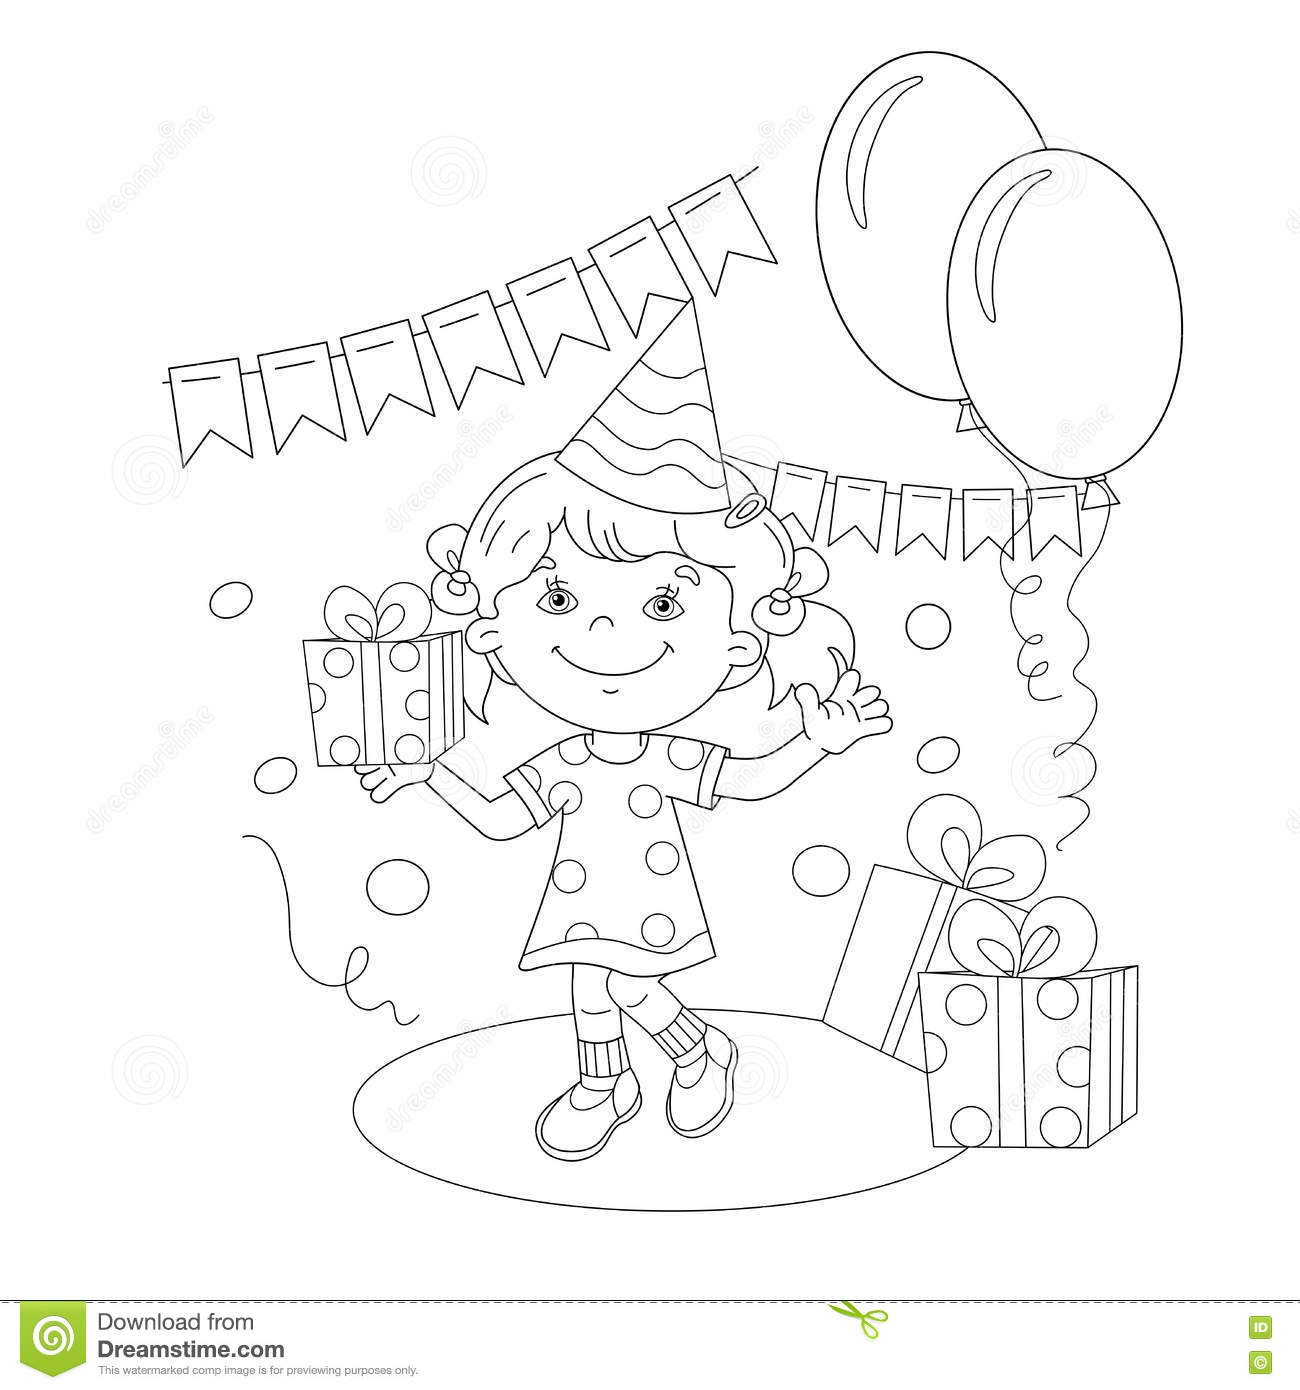 Coloring Page Outline Of Cartoon Girl With A Gift At The Holiday Book For Kids